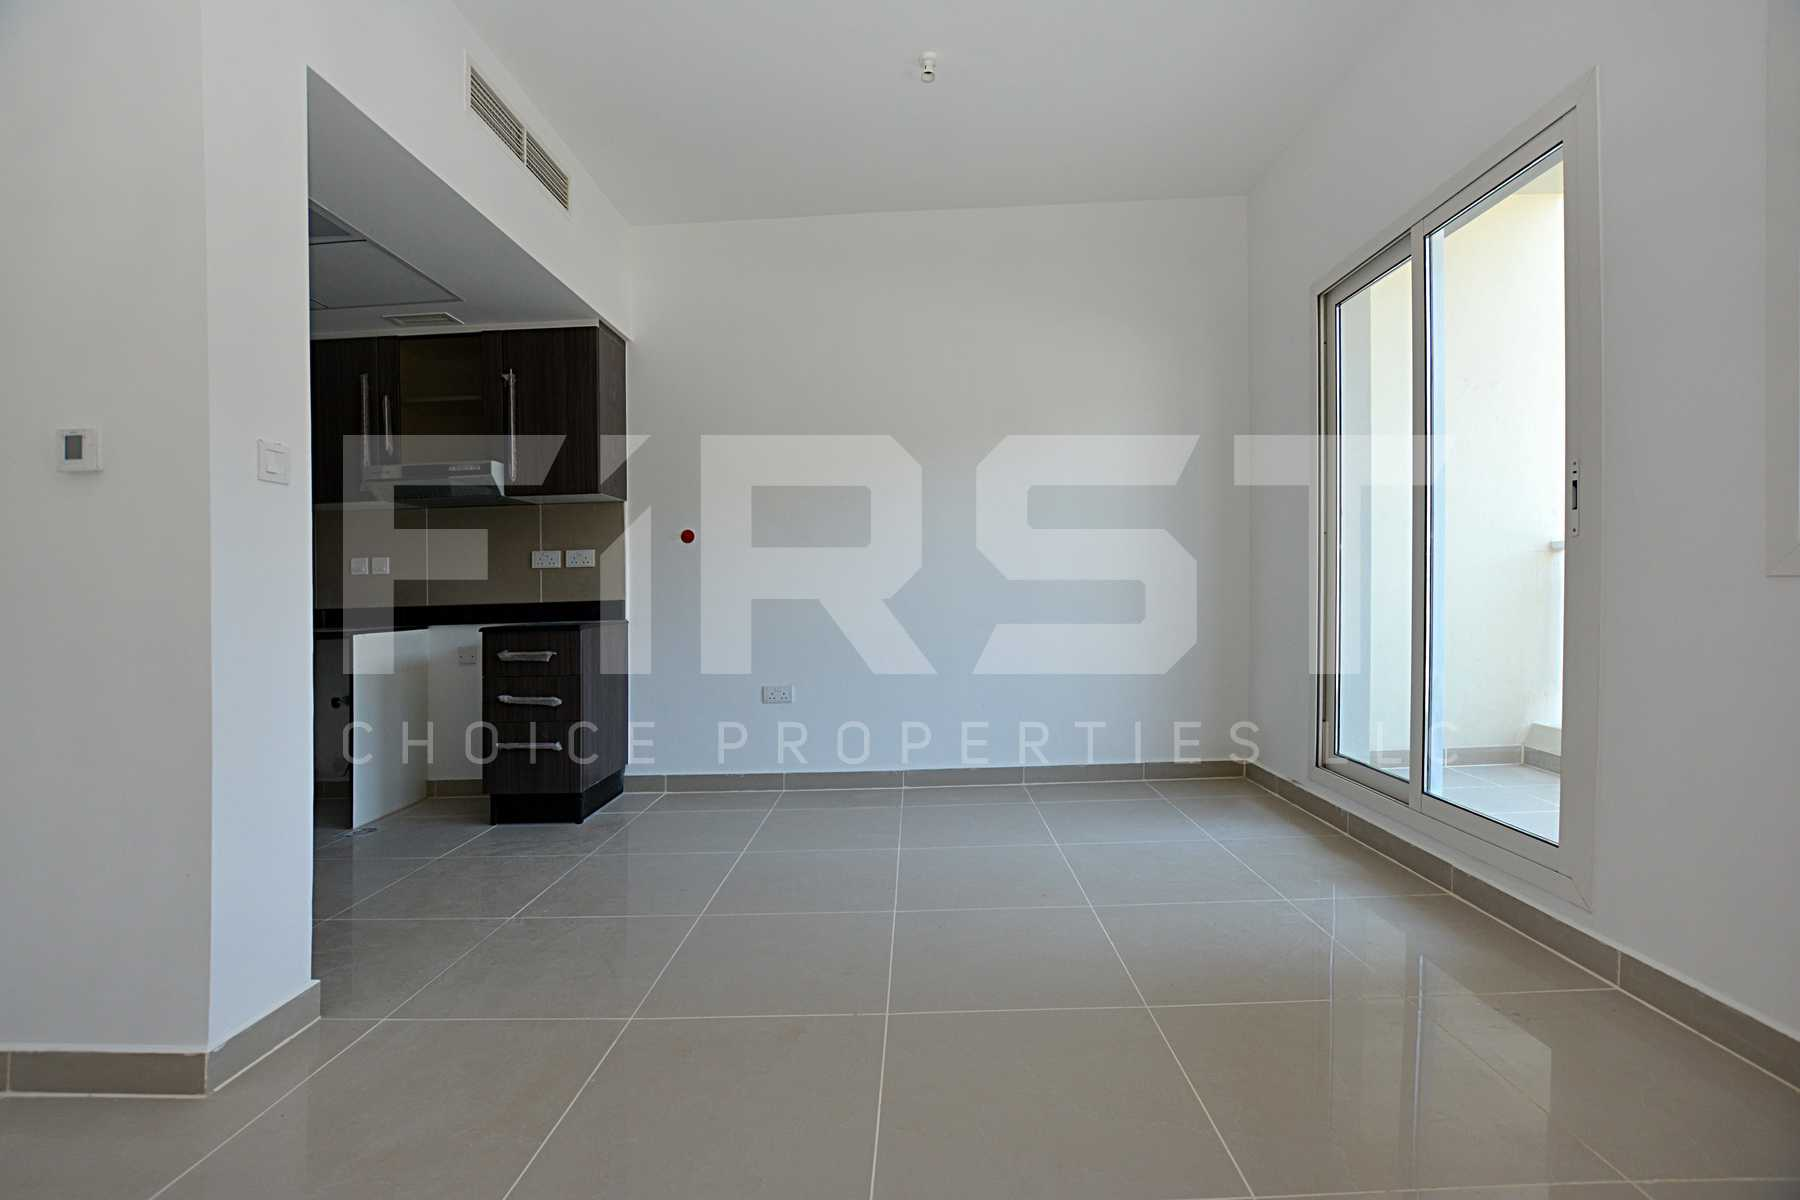 Internal Photo of Studio Apartment Type C in Al Reef Downtown Al Reef Abu Dhabi UAE 40 sq.m 426 sq.ft (7).jpg